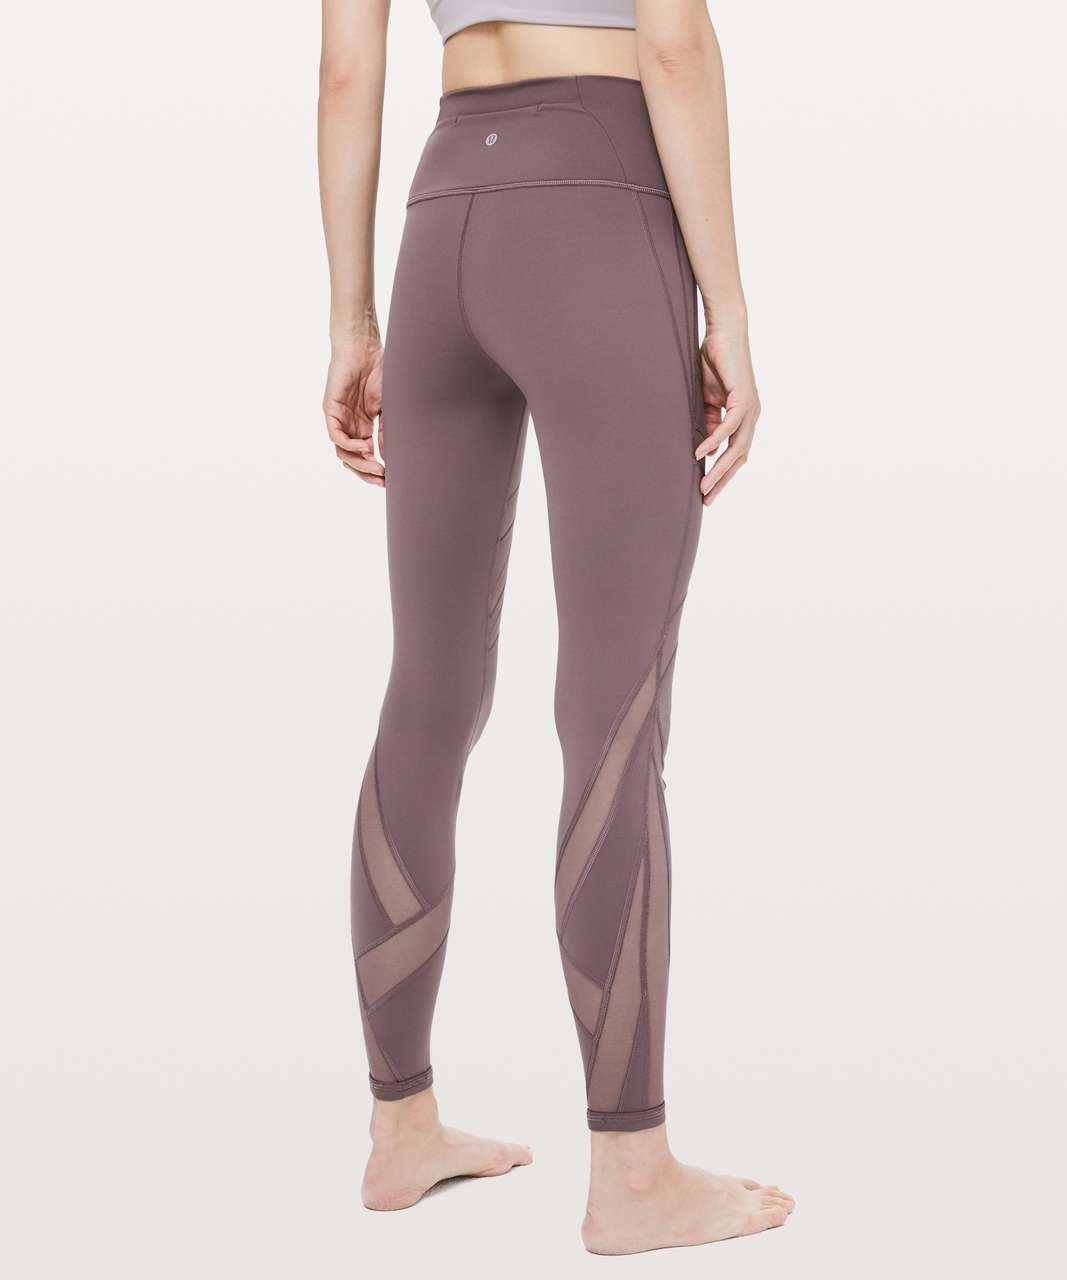 "Lululemon Wunder Under High-Rise Tight *Mesh 28"" - Antique Bark"